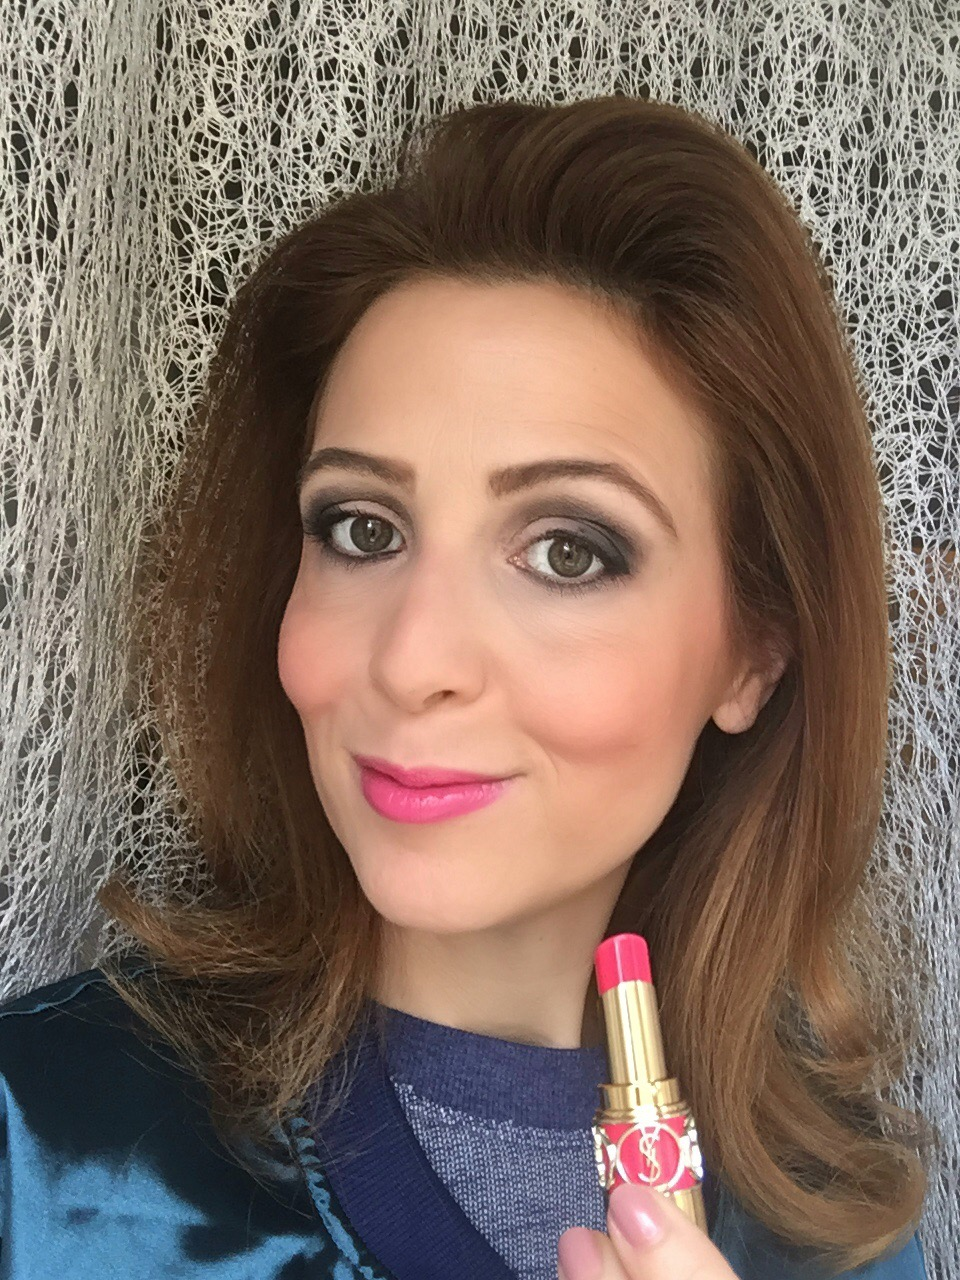 YSL Rouge Volupté Shine lipstick selfie rose saint germain on Fashion and Cookies beauty blog, beauty blogger